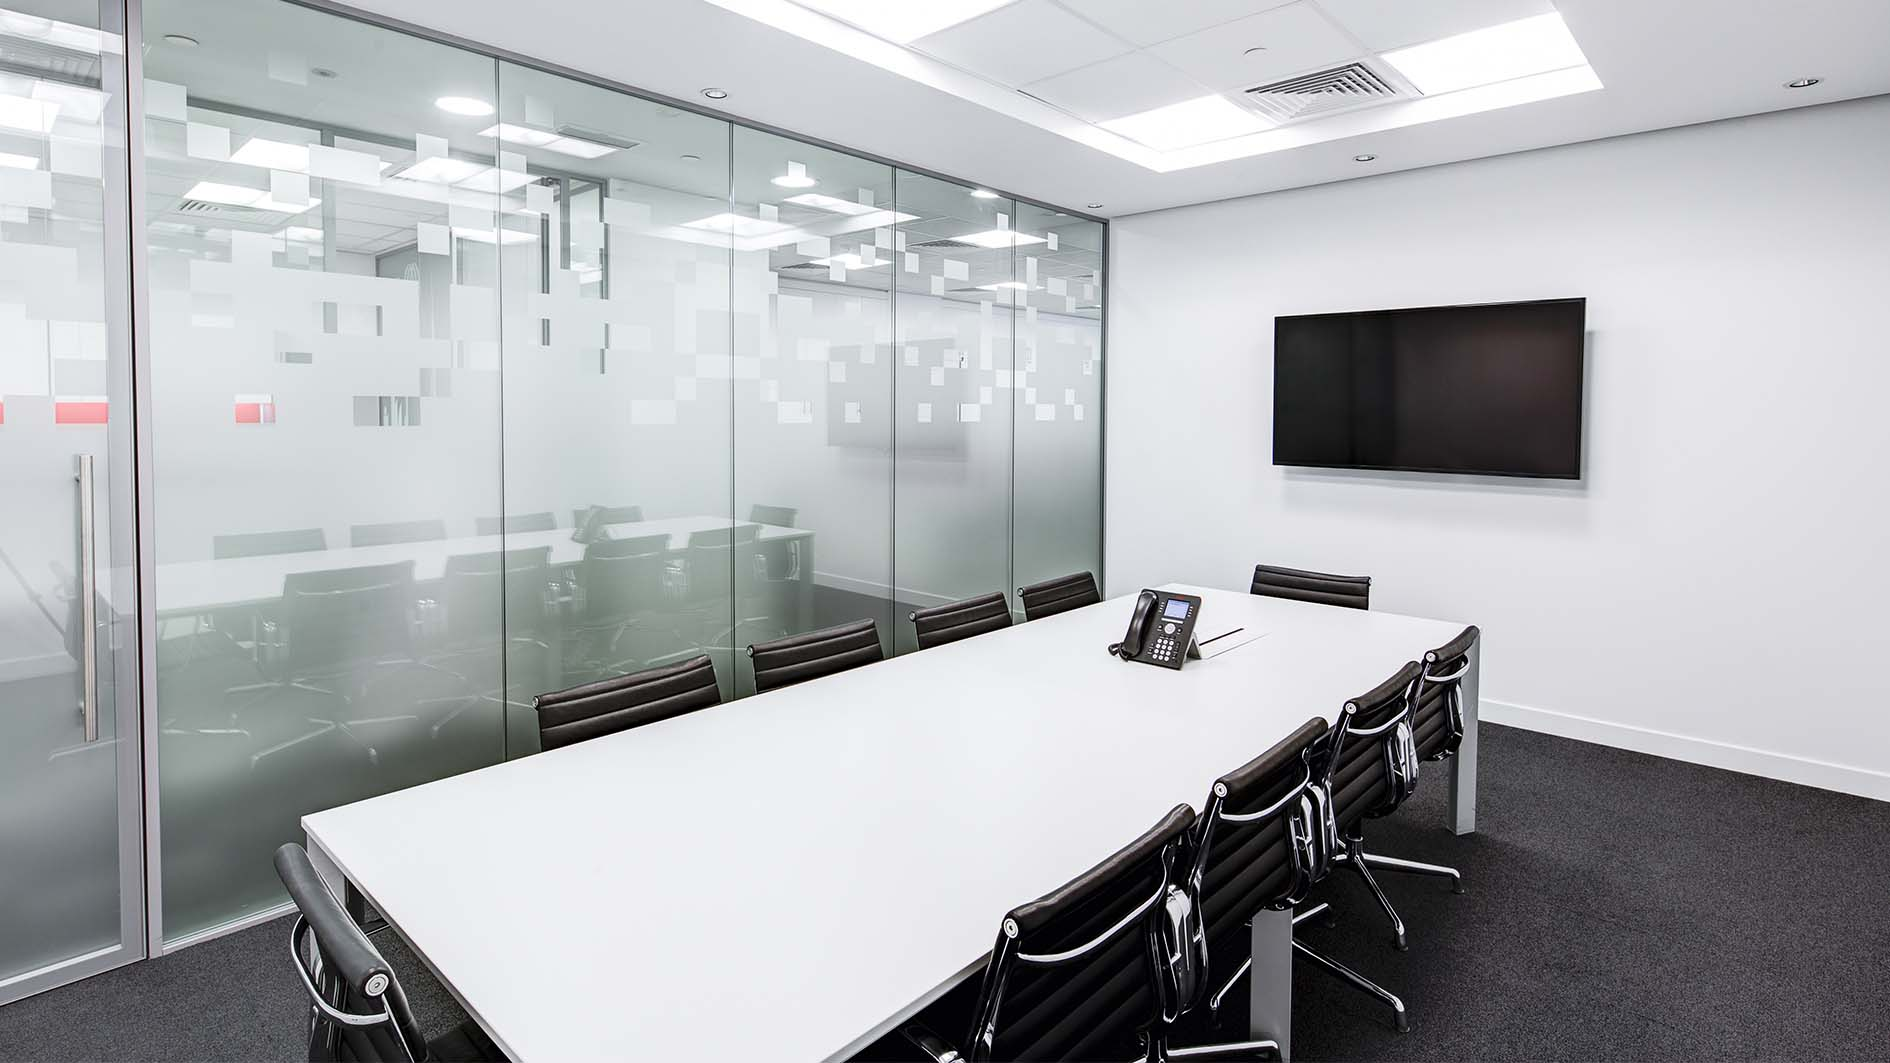 BOARDROOM_SOLUTION_MEETING_ROOMS_AVAAS_AUDIO_VISUAL_AS_A_SERVICE